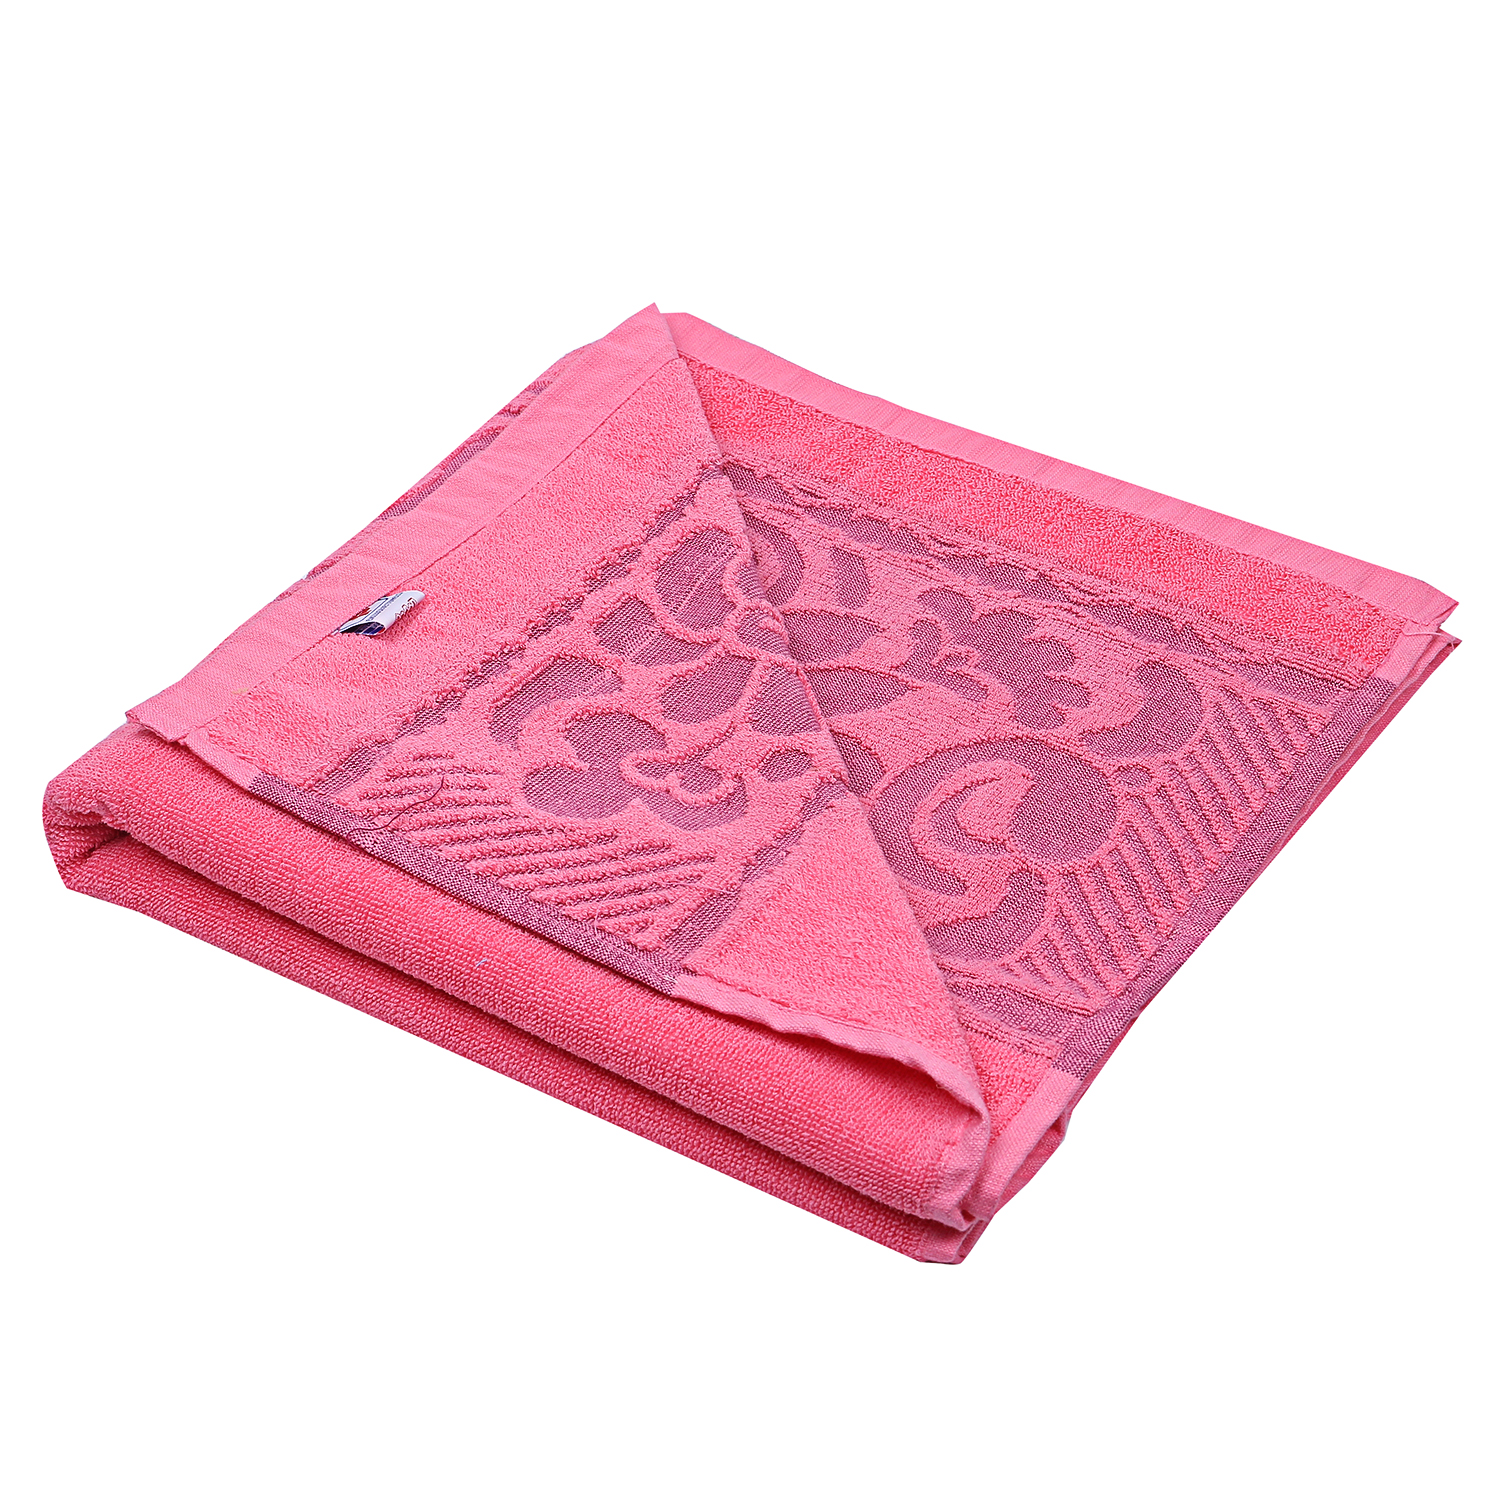 "Kuber Industries 100% Cotton 5 Pieces Full Size Bath Towel 30""x60"" (Pink)"